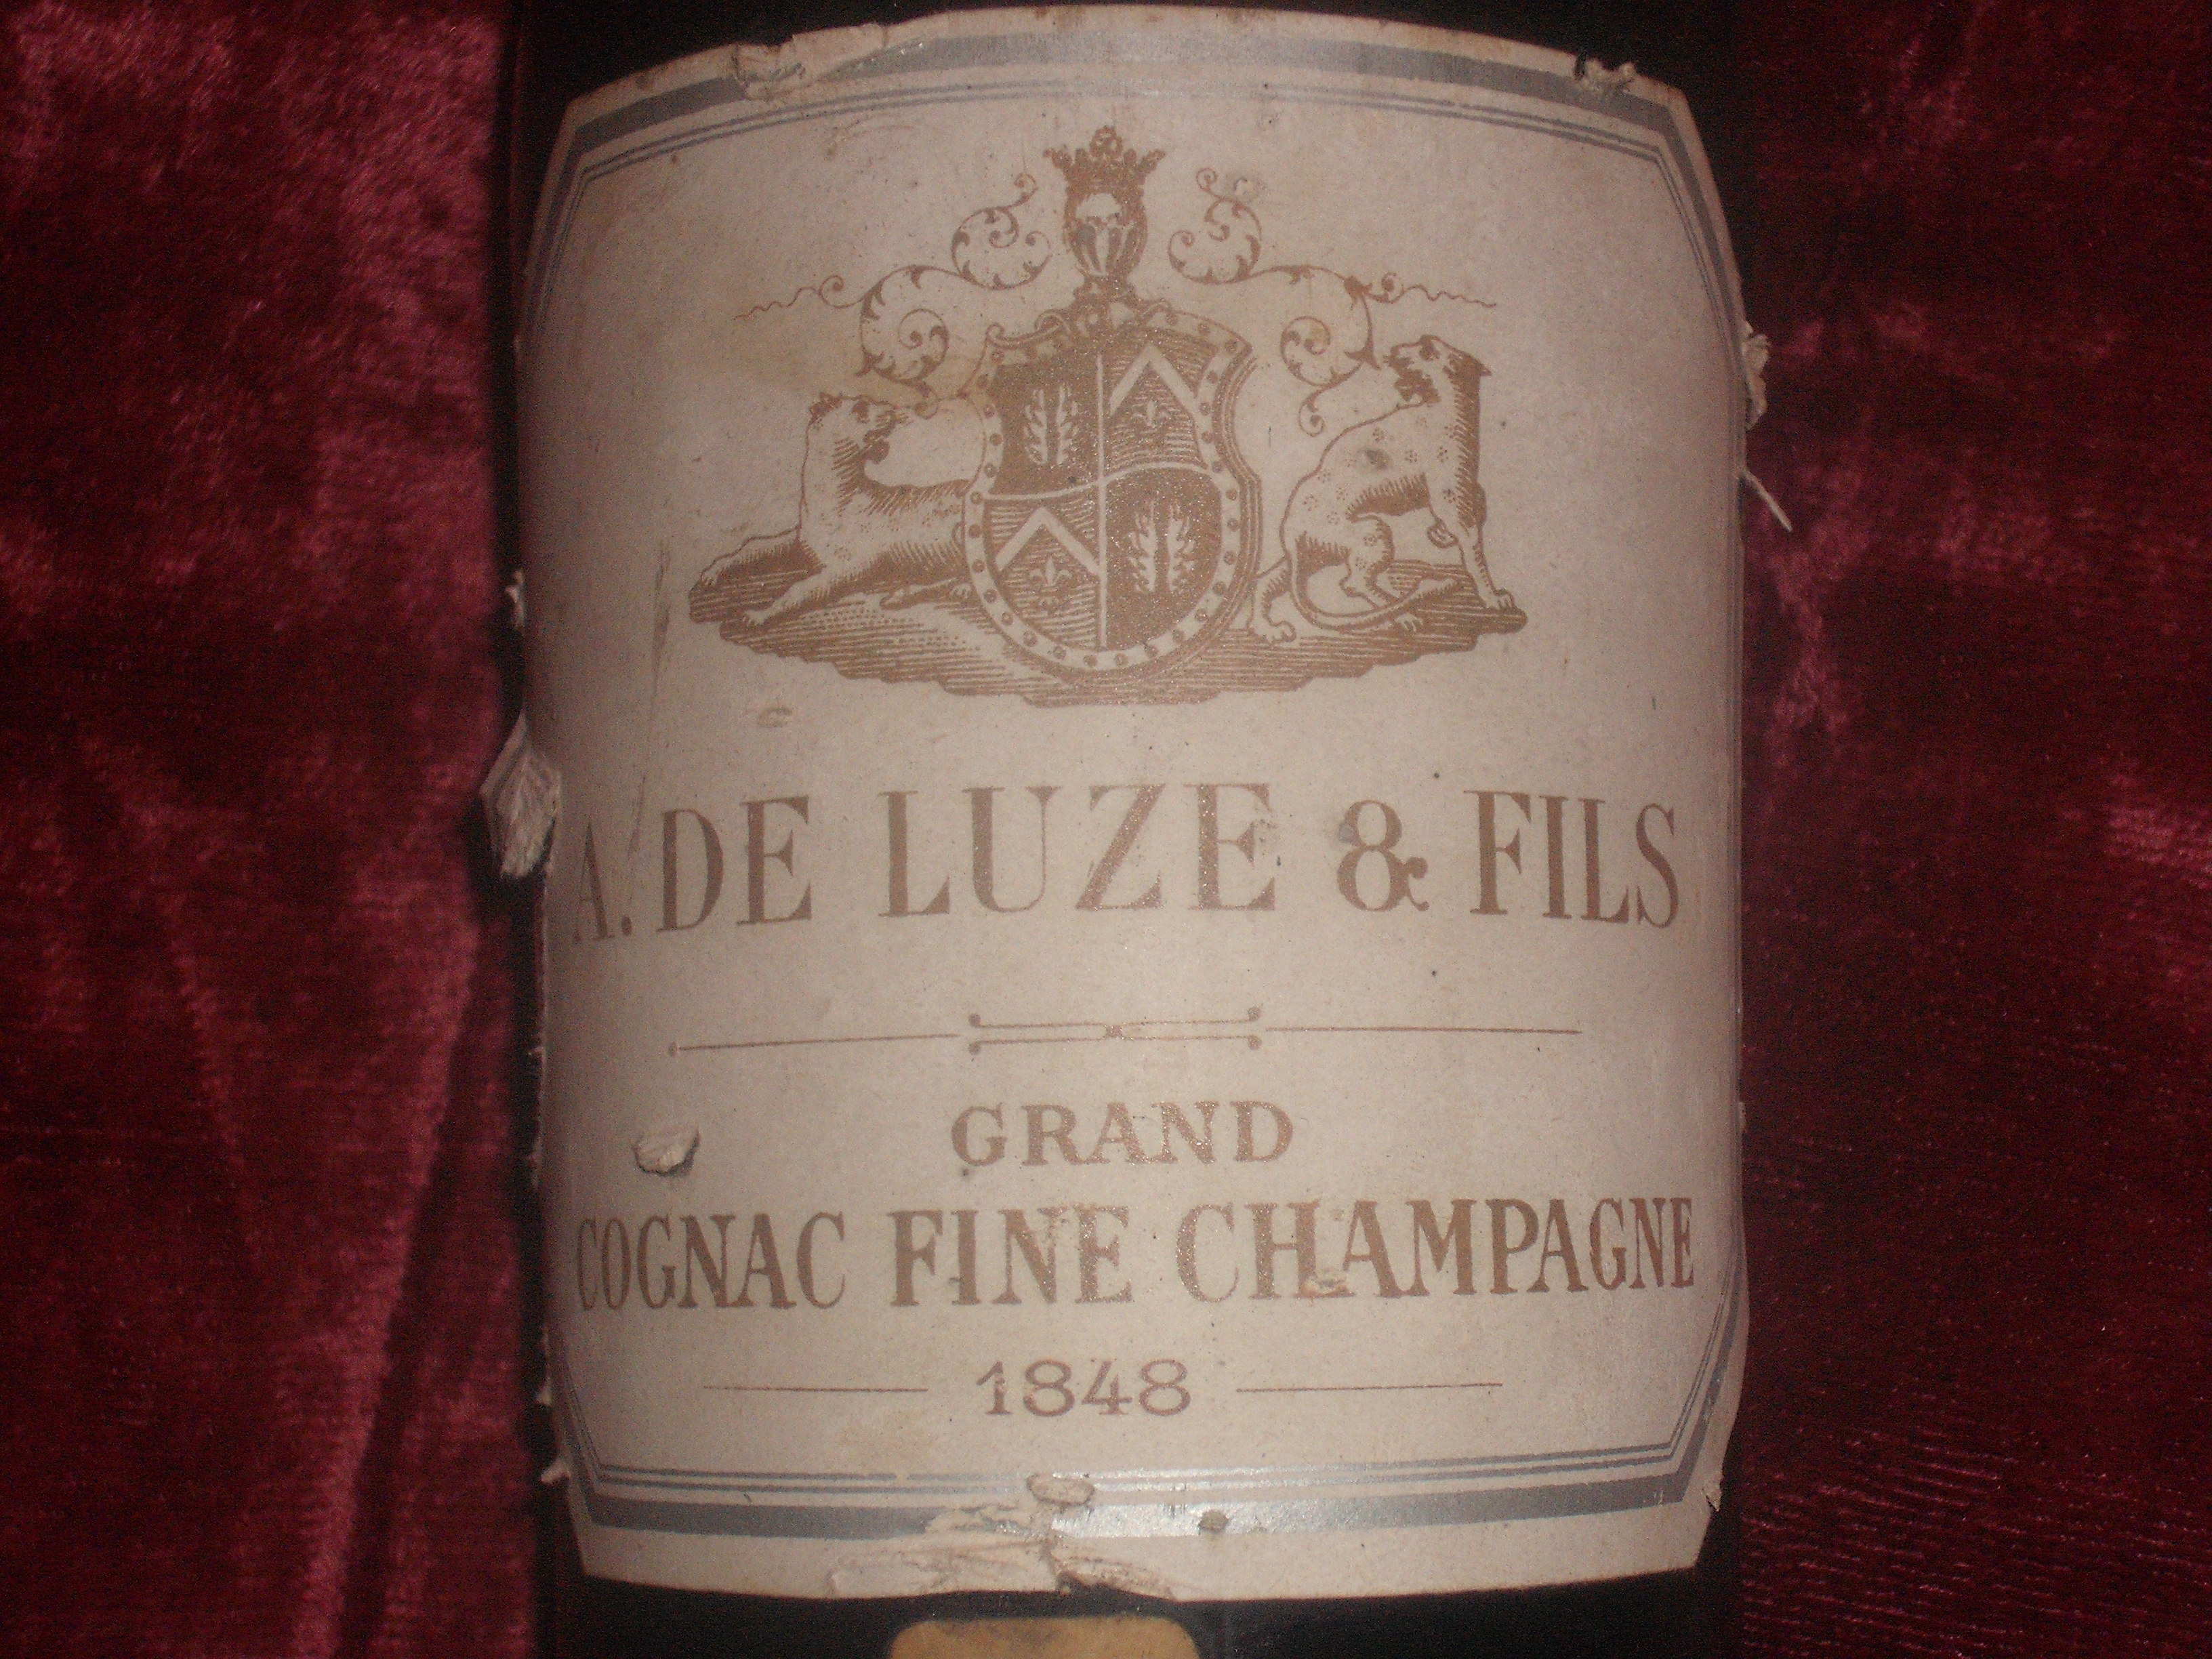 Old A. De Luze & Fils Cognac Fine Champagne is waiting in UK